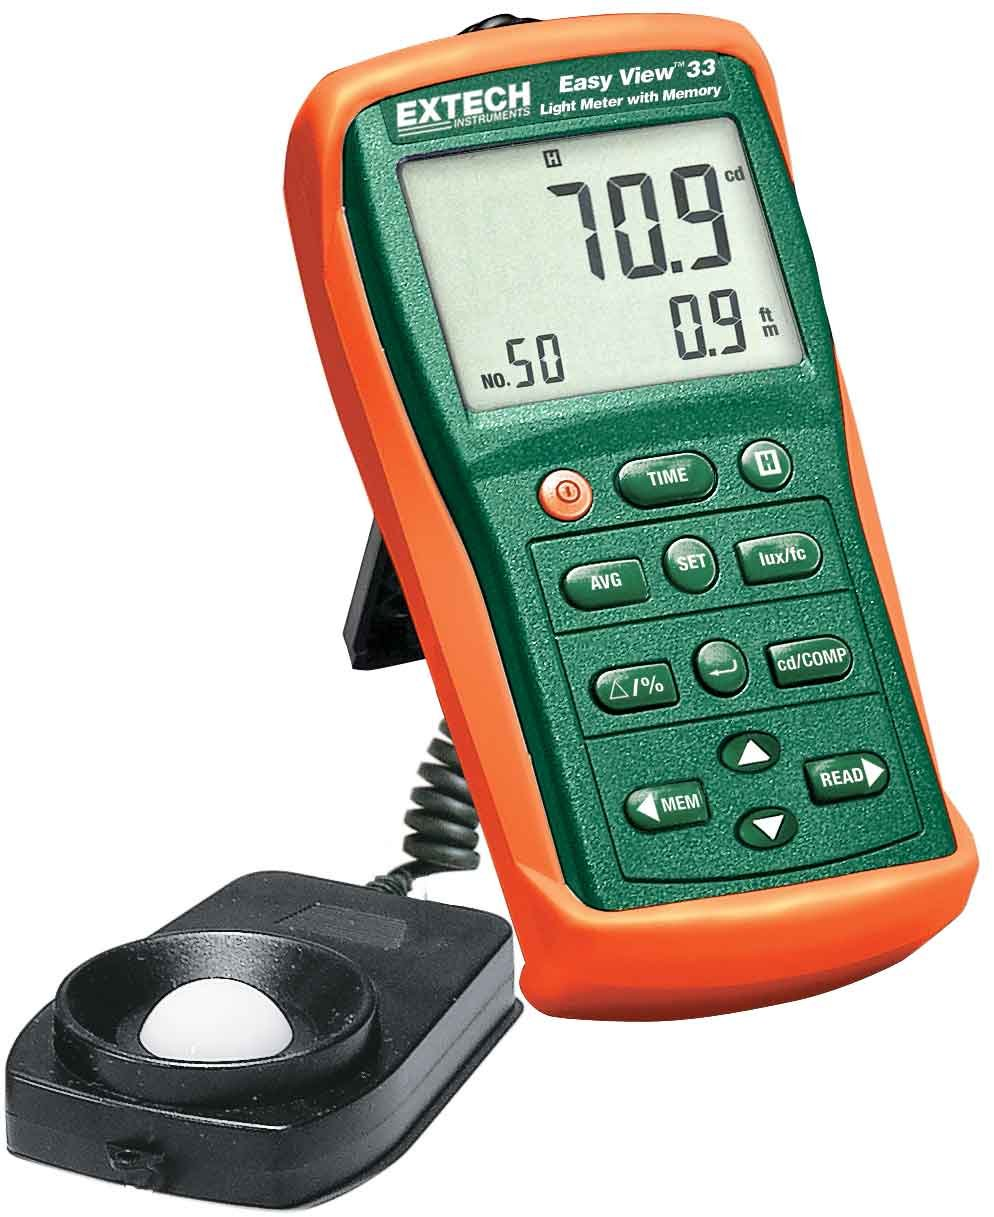 Extech EA33 Easy View Light Meter with Memory by Extech